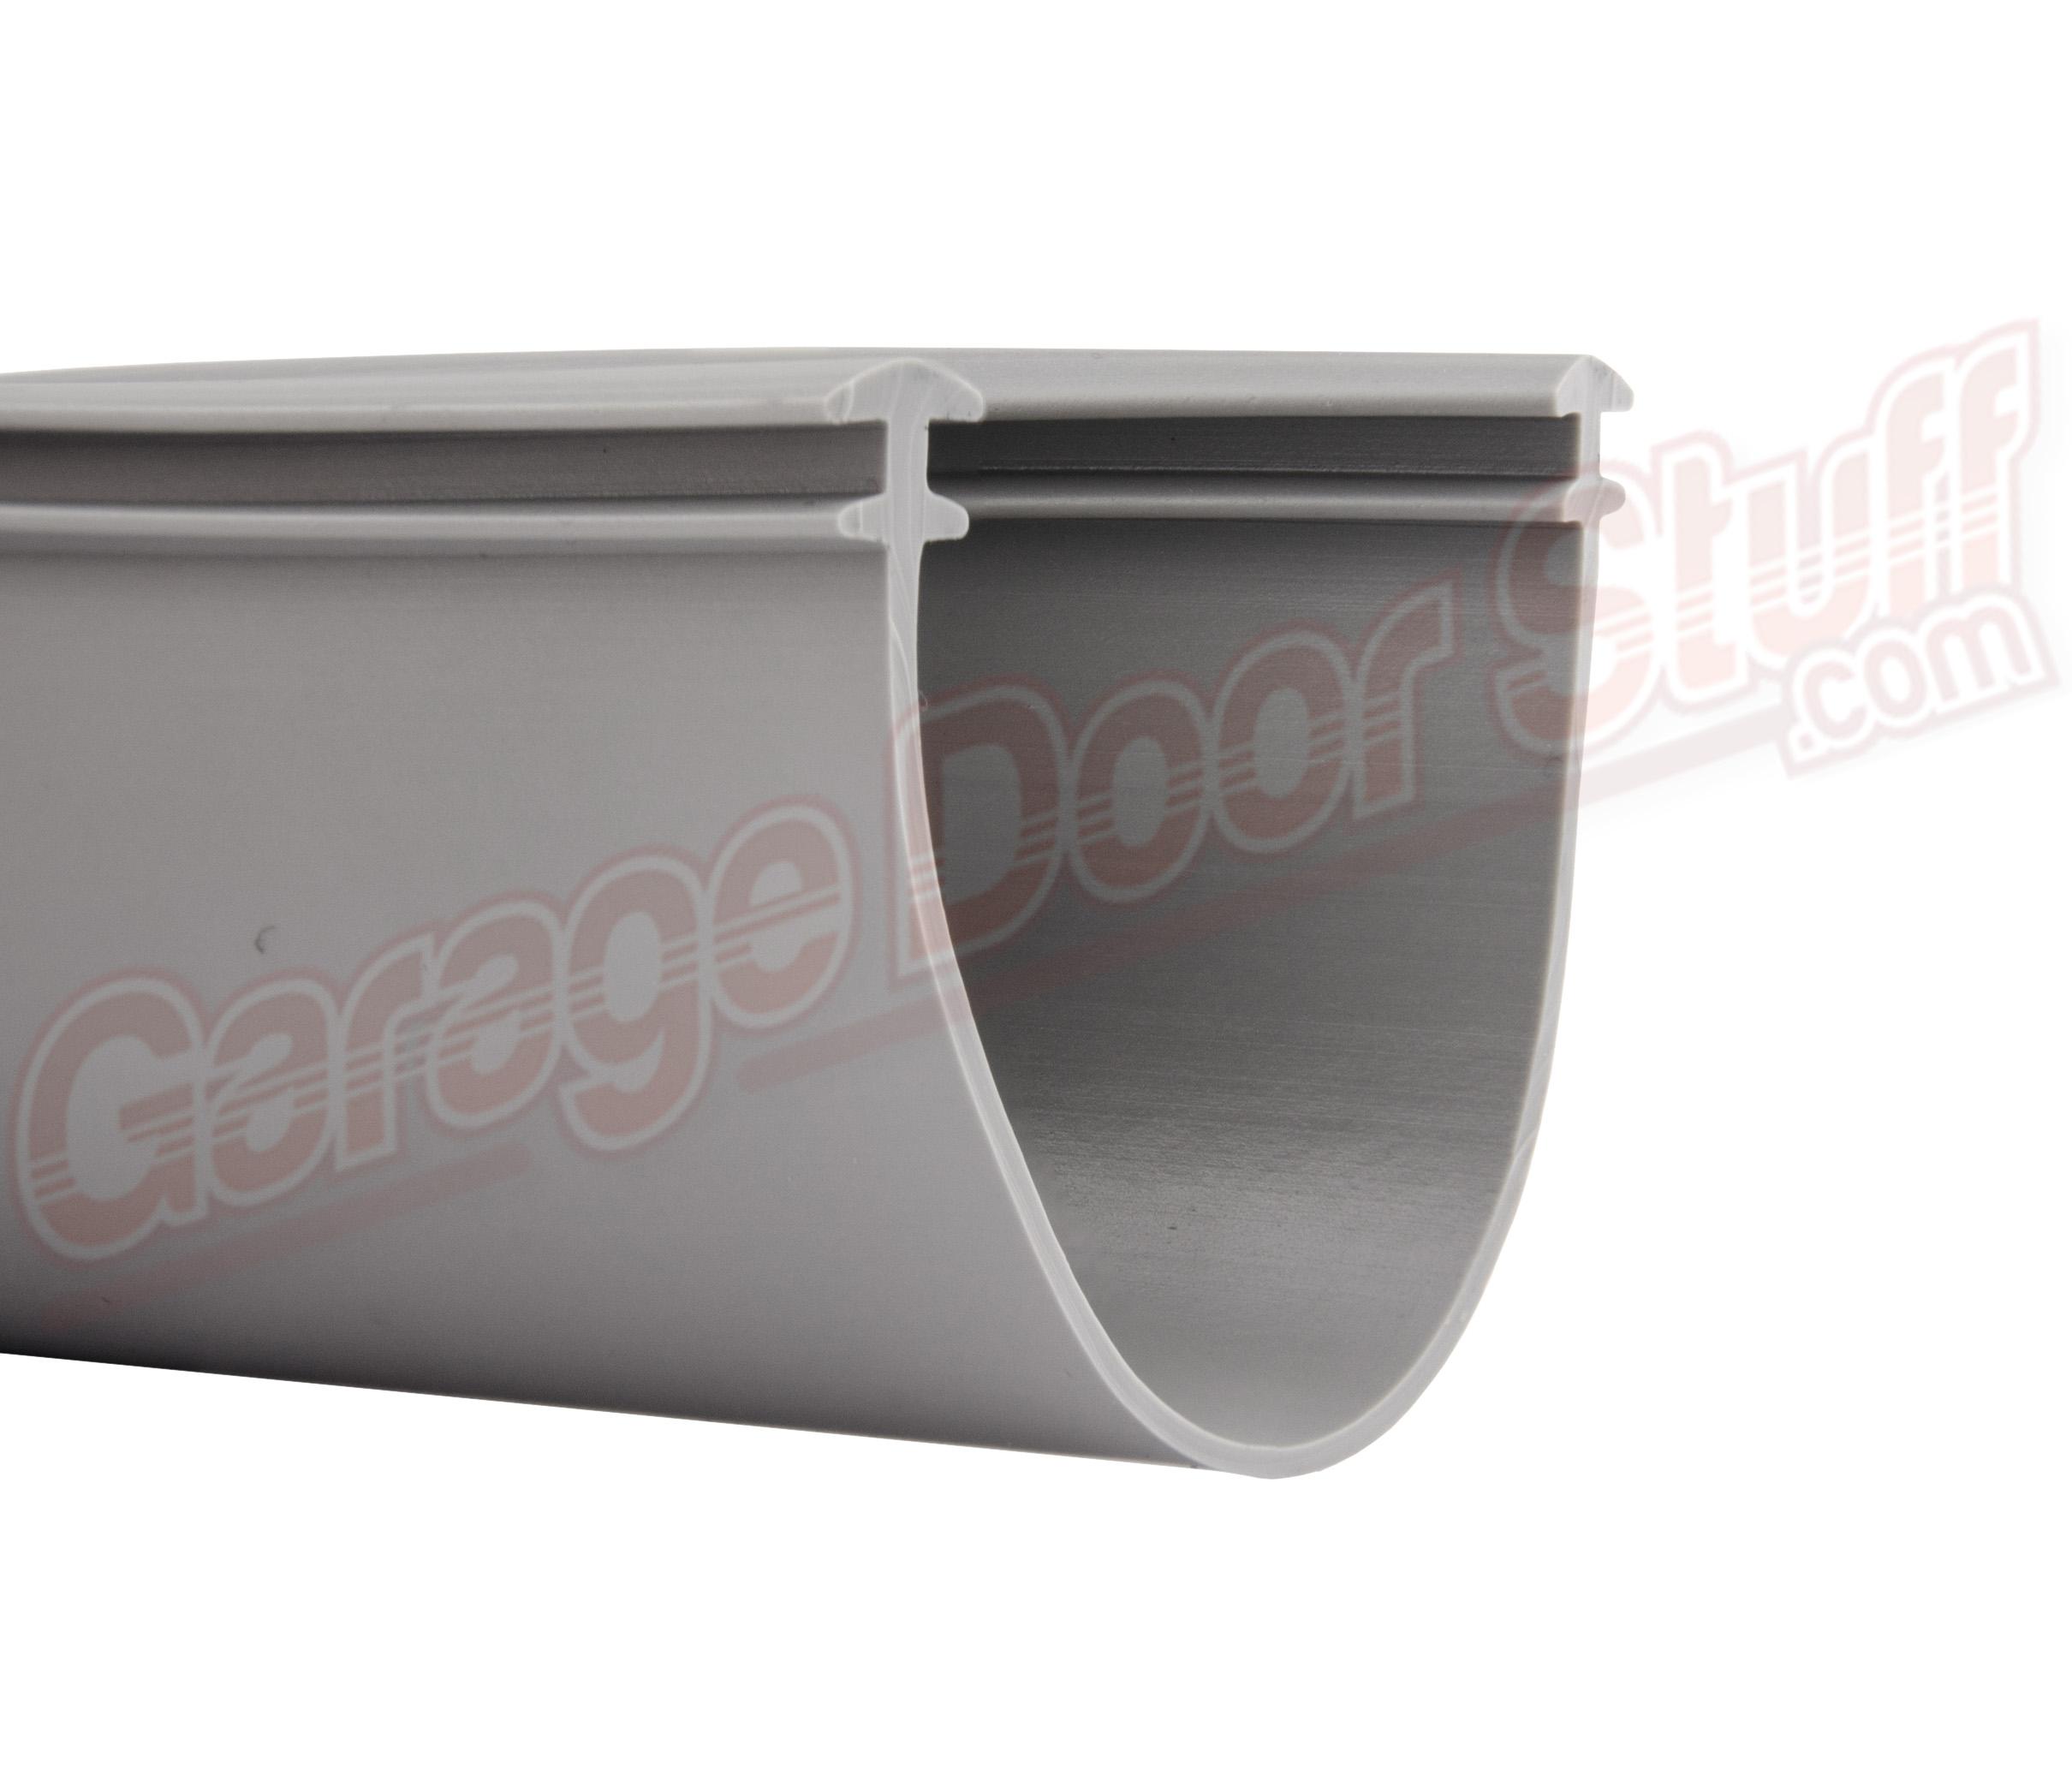 Midland garage door weather seal garage door stuff midland garage door weather seal garagedoorstuffandebaytemplate midland garage door bottom rubansaba